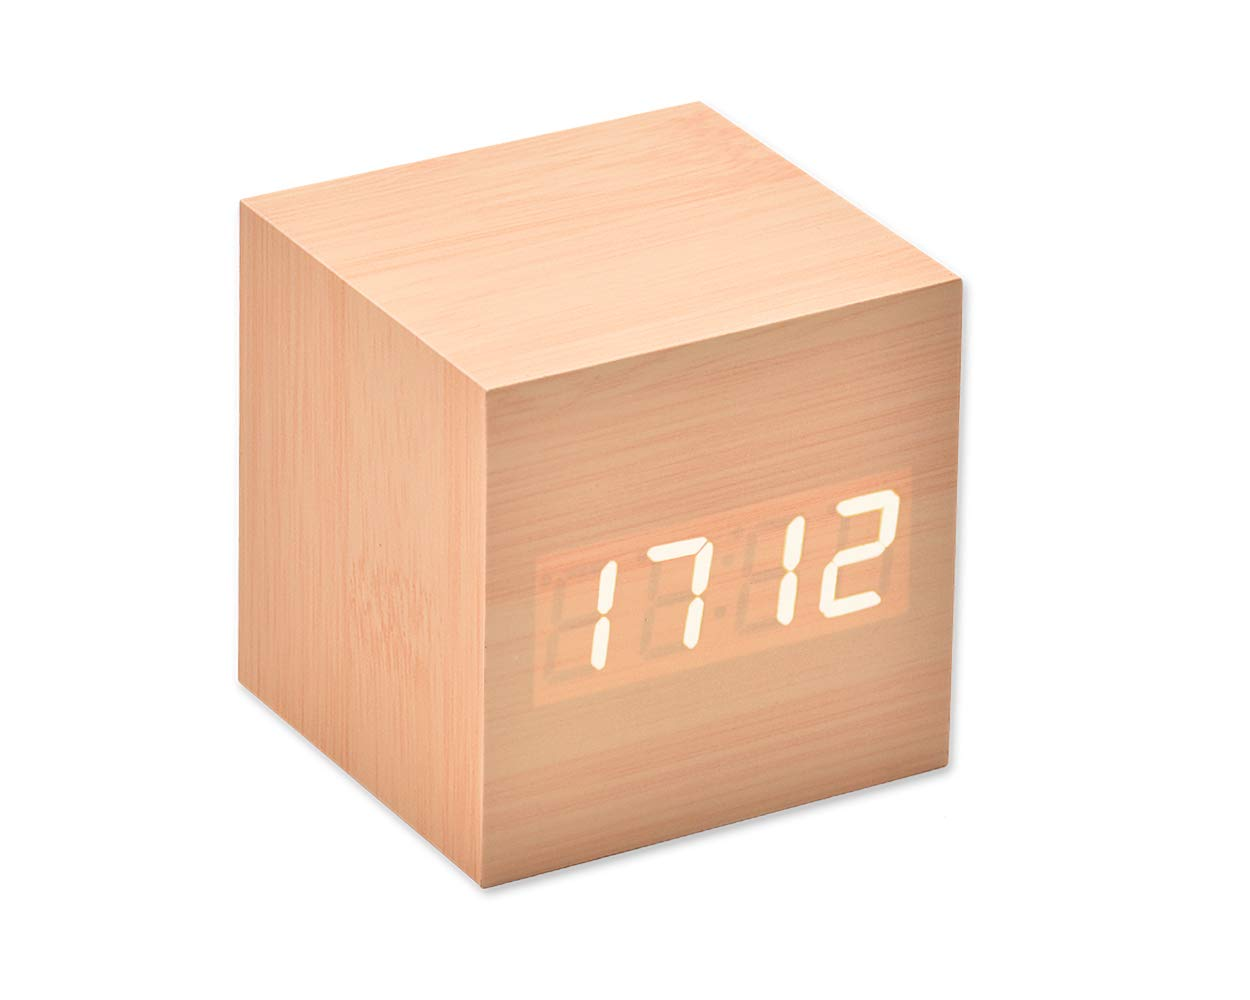 Shopready LED Alarm Clock Wooden Digital Alarm Clock Wood Cube Clock with Voice Activation, Date Time and Temperature Display Alarm Function for Home and Office - Black (White Display)